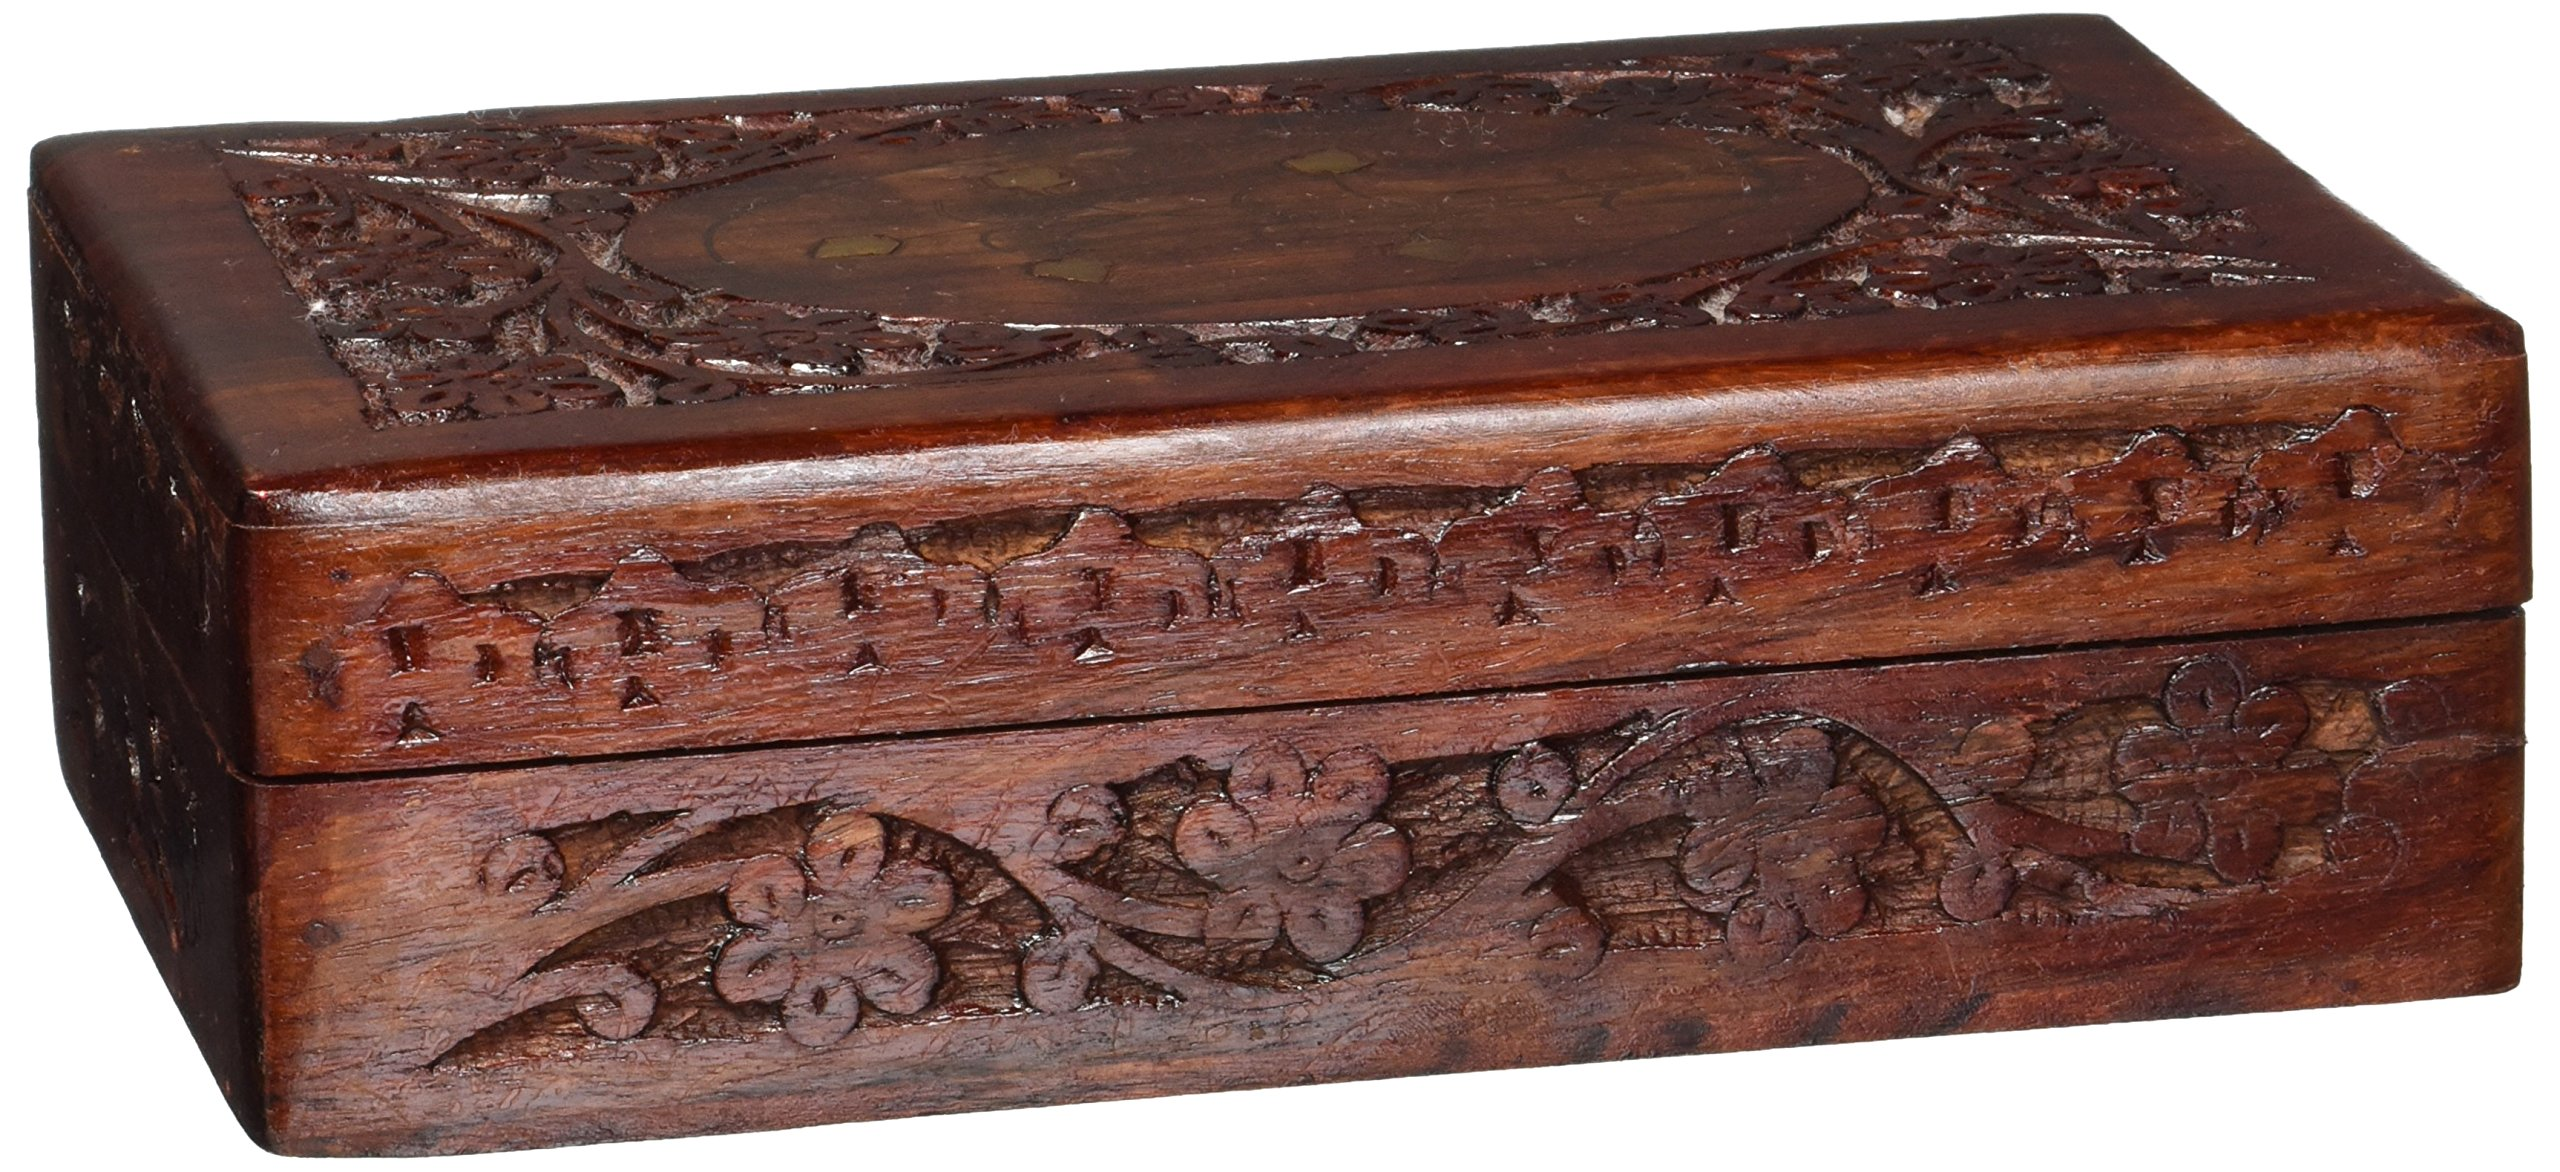 Handcrafted Wooden Jewelry/Keepsake Box with Lid - Small Wood Storage Chest Vintage Look (8 x 5)